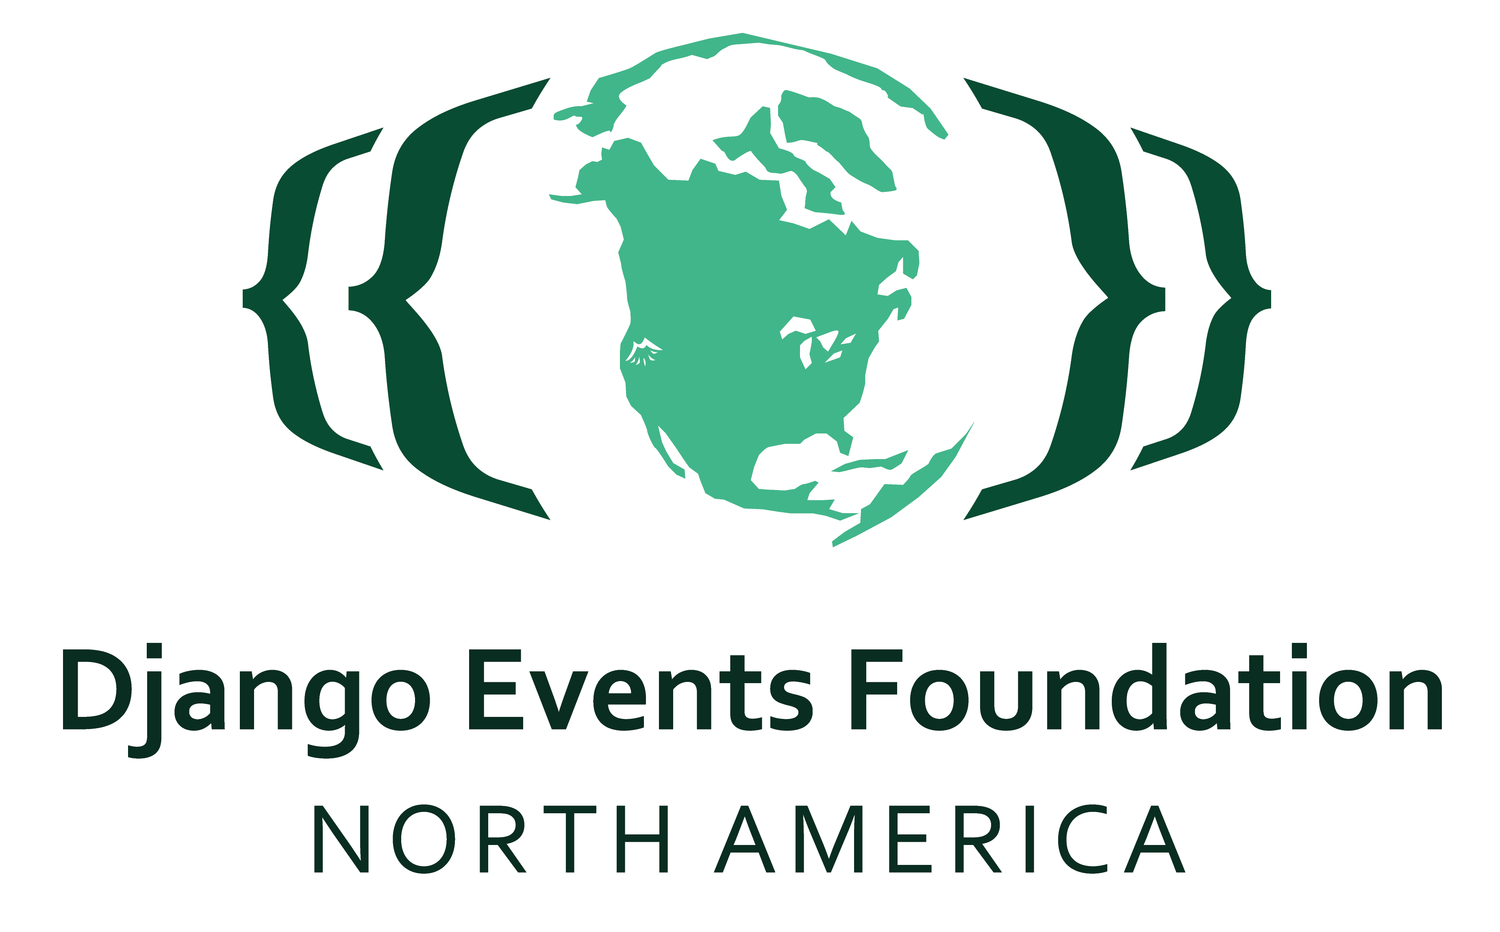 Django Events Foundation North America